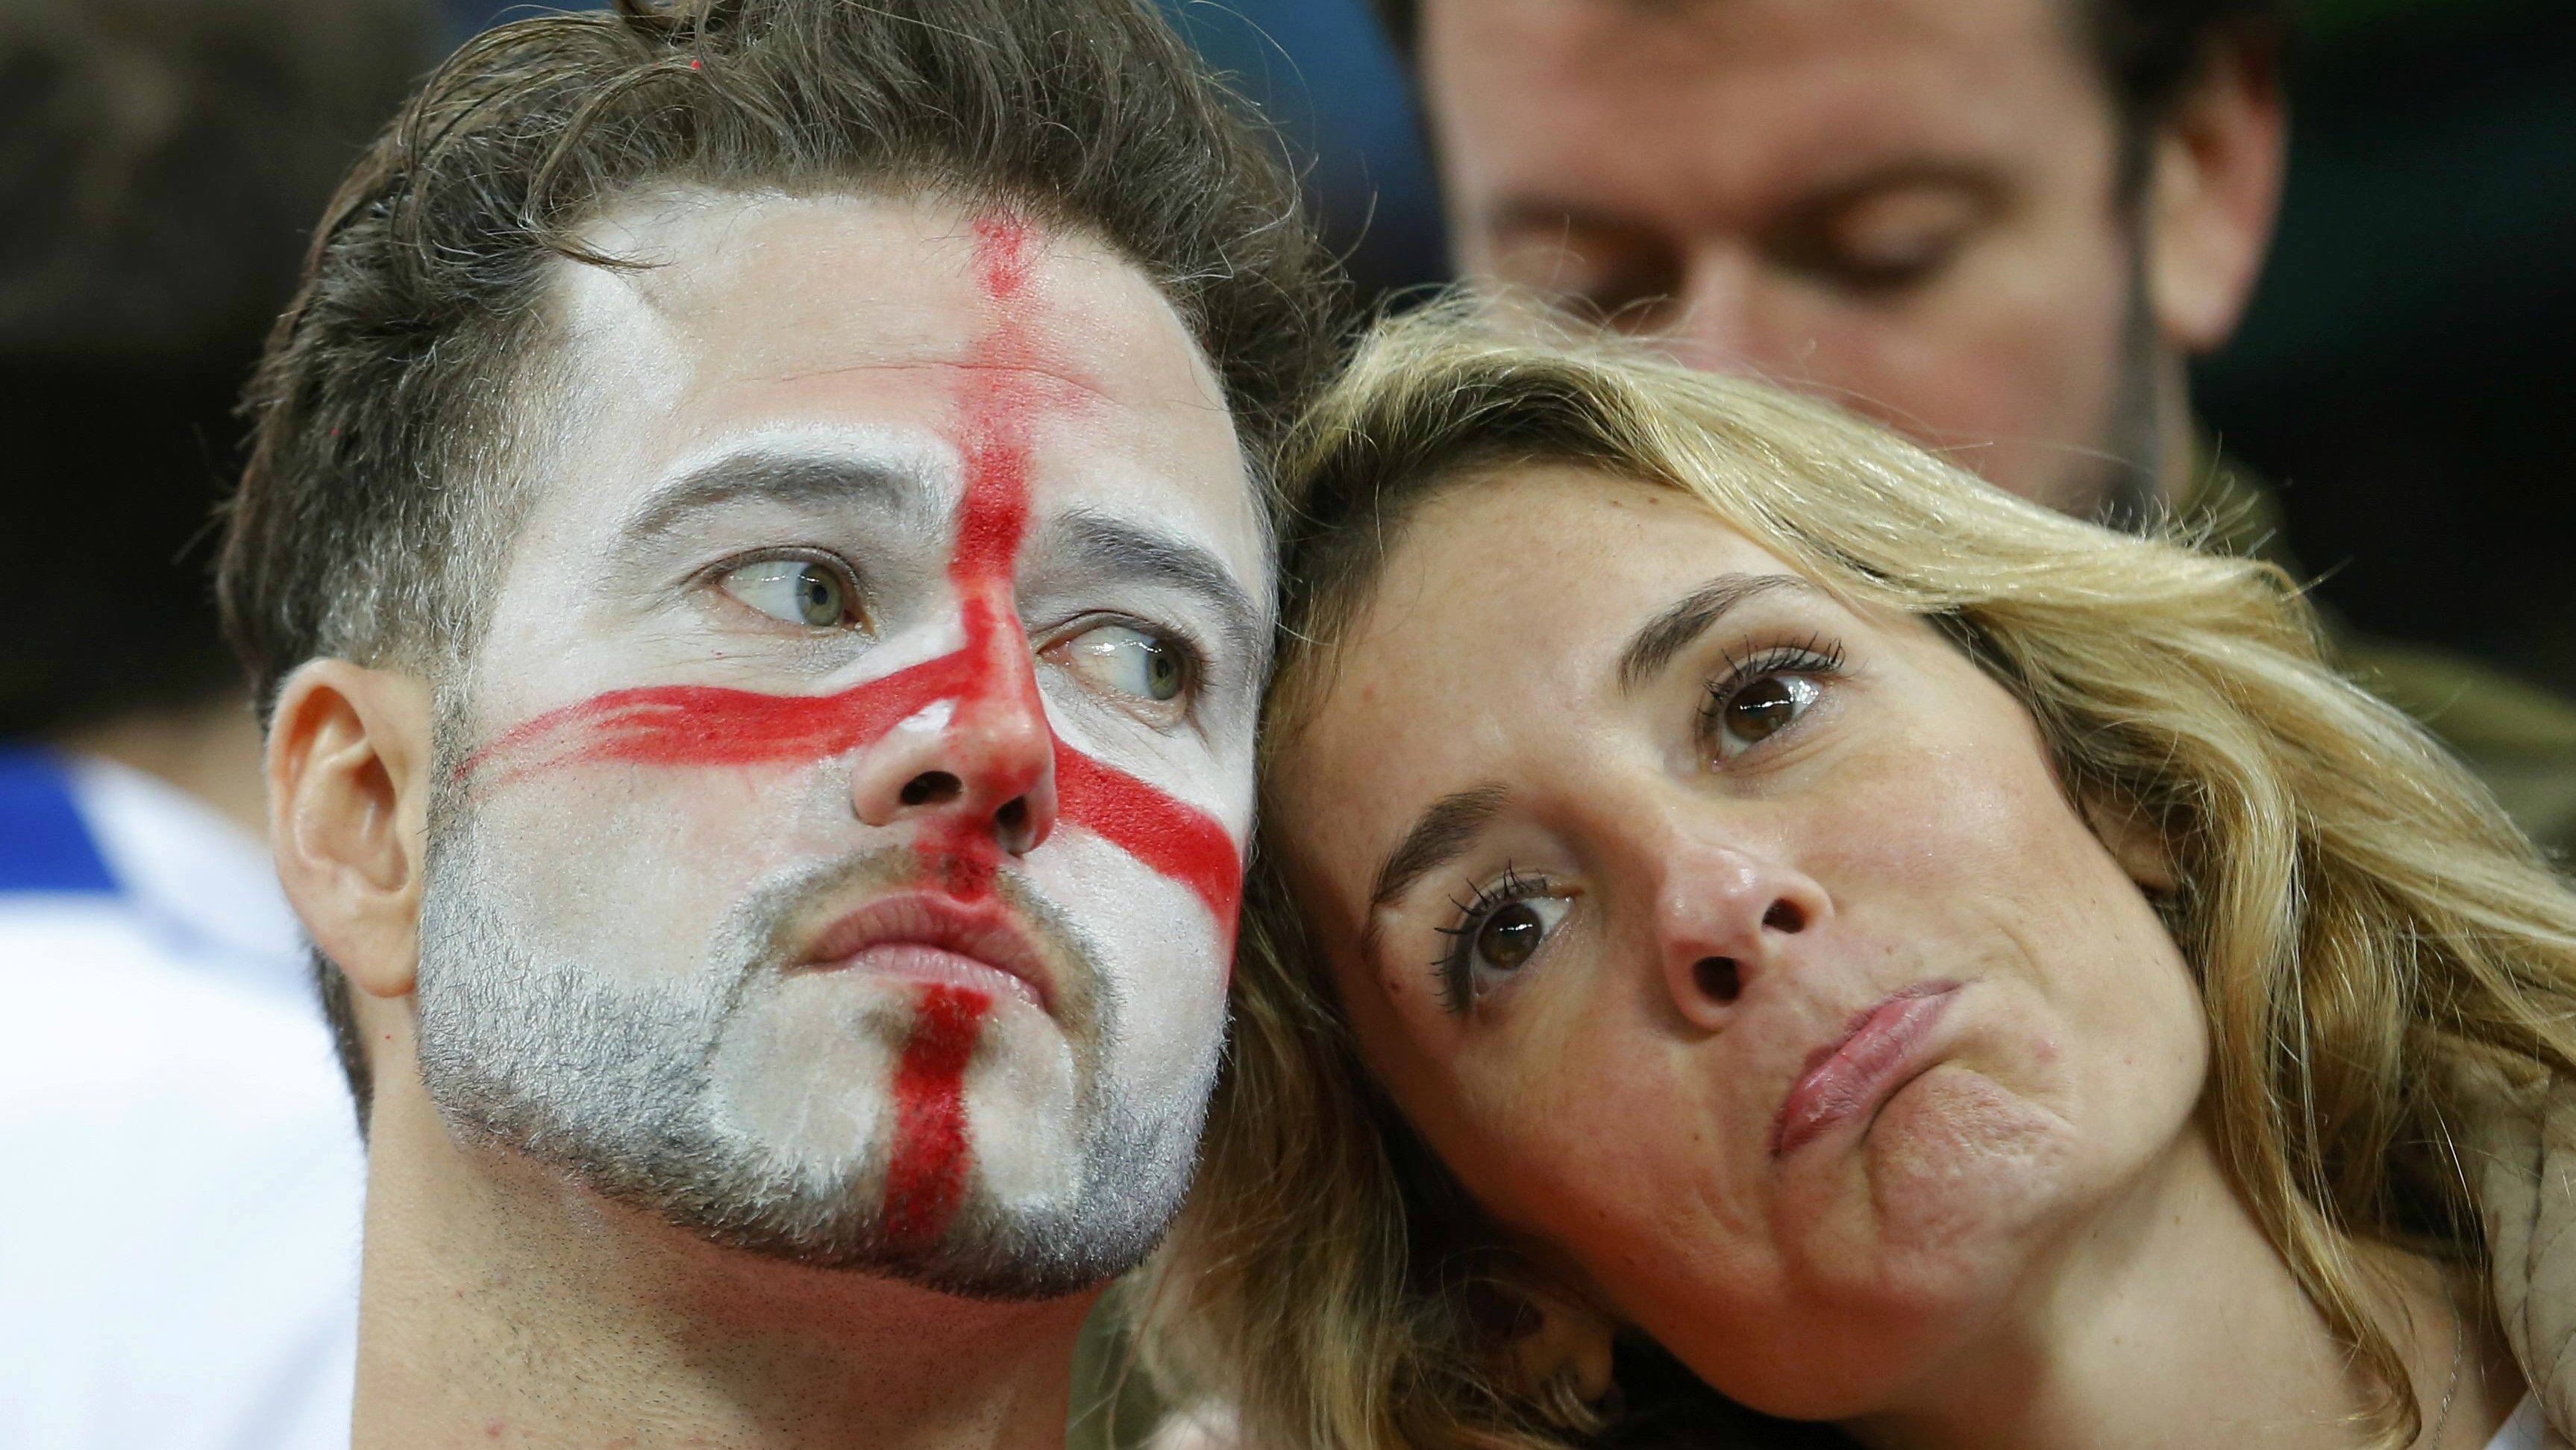 Two sad England fans at the World Cup